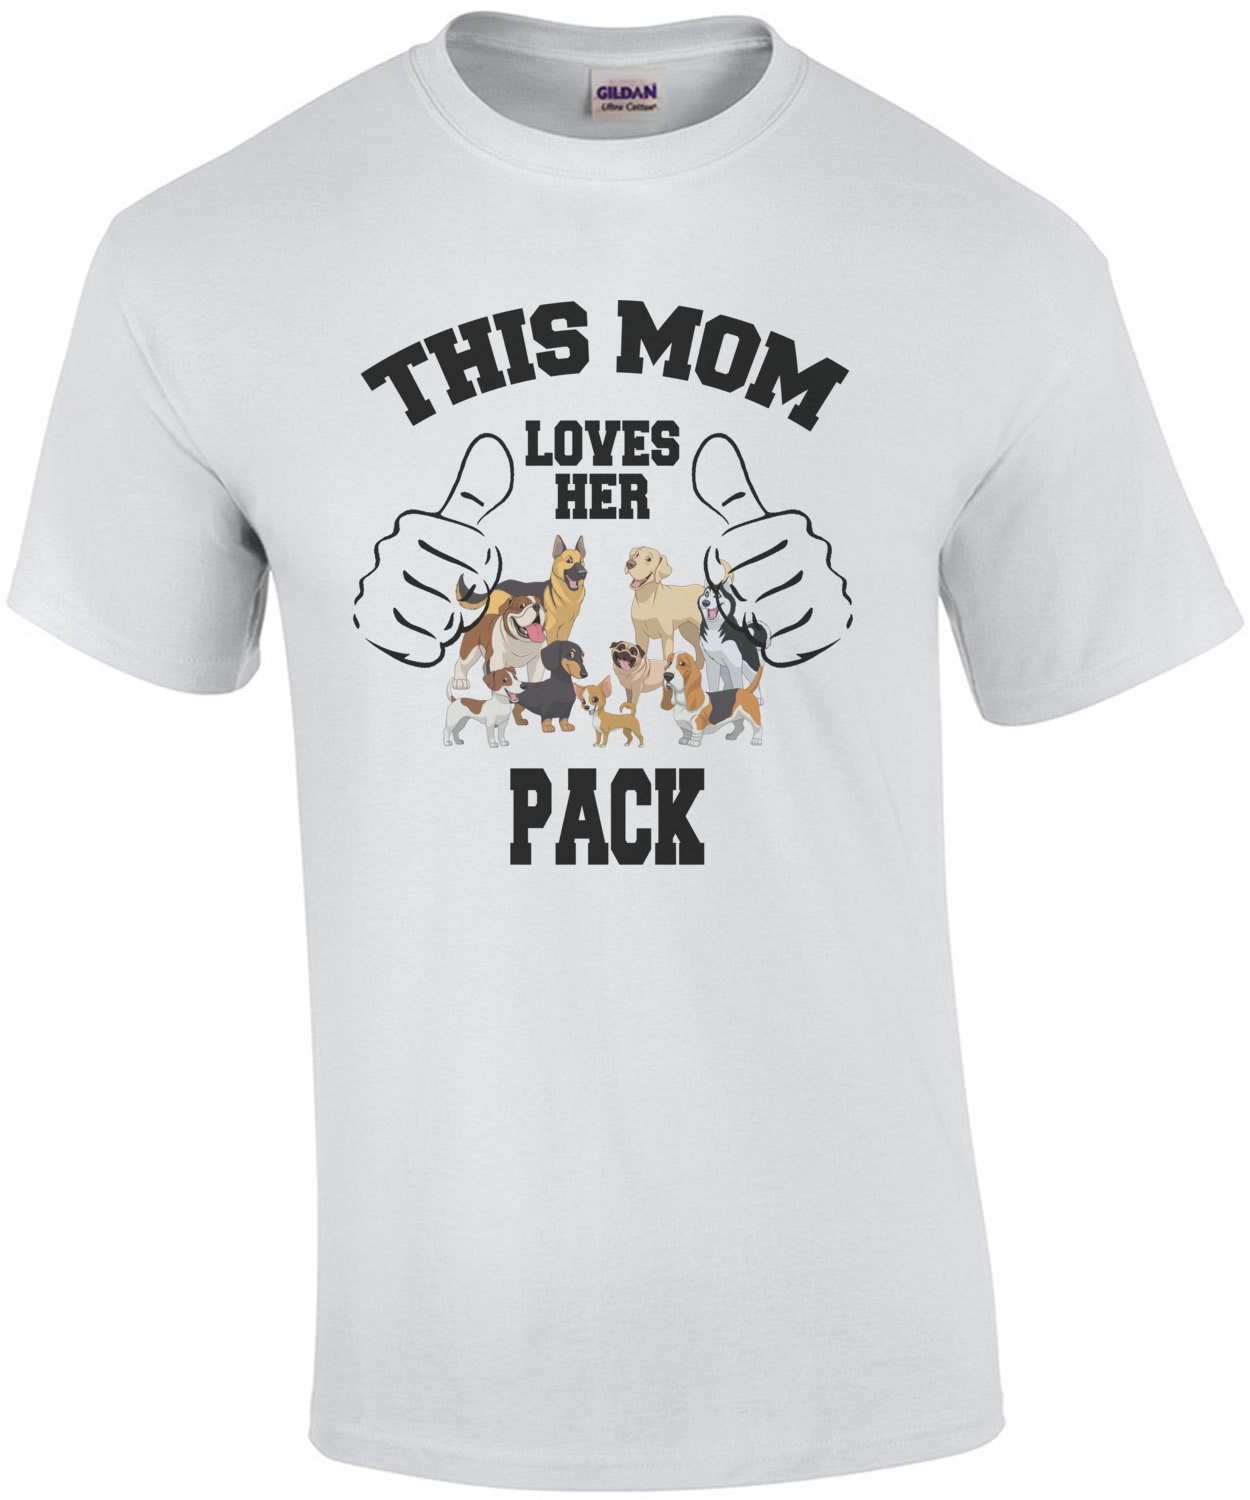 This Mom Loves Her Pack T-Shirt